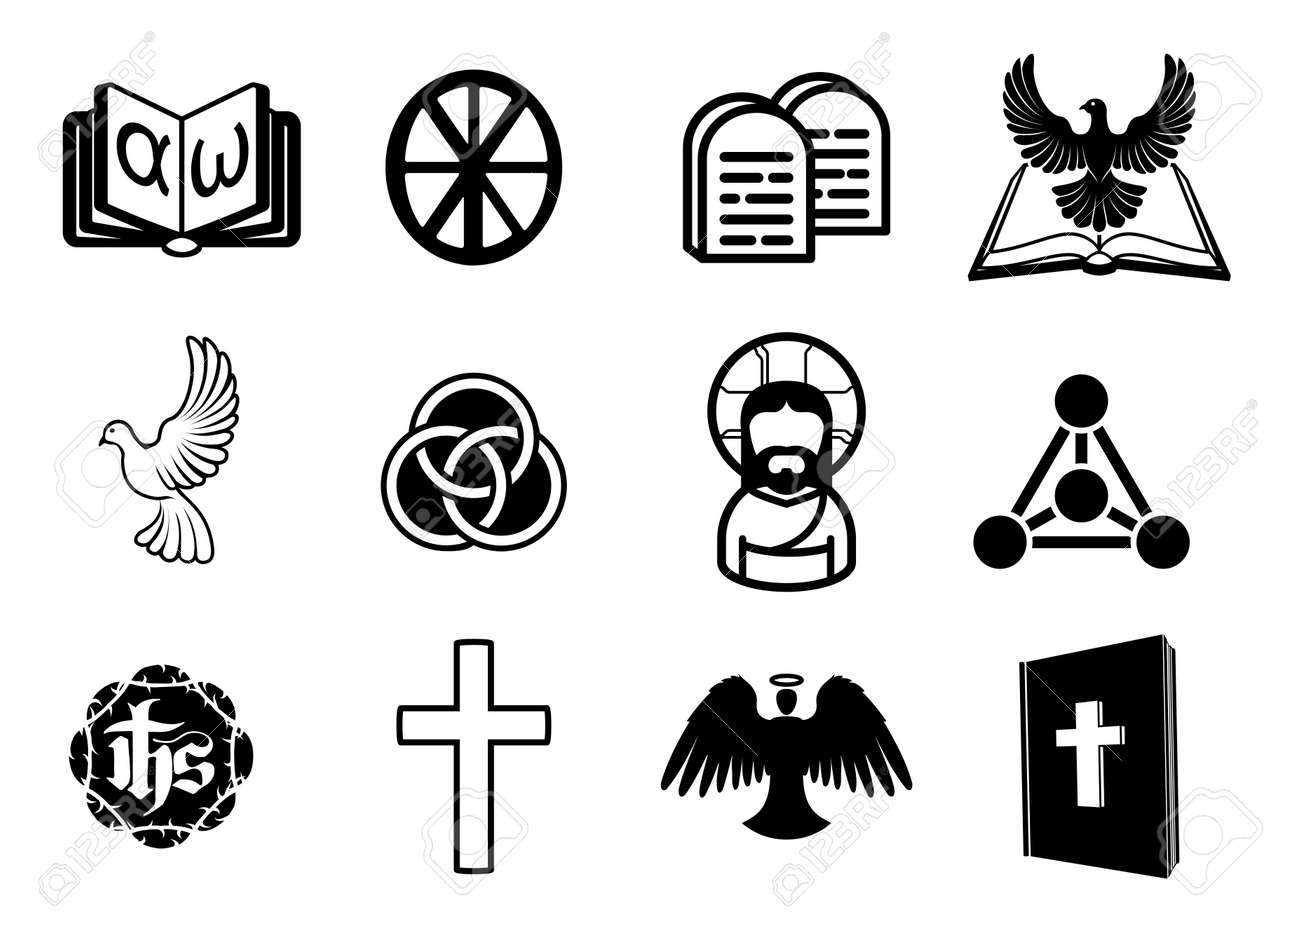 A christian religious icon set with signs and symbols related a christian religious icon set with signs and symbols related to christian themes stock vector biocorpaavc